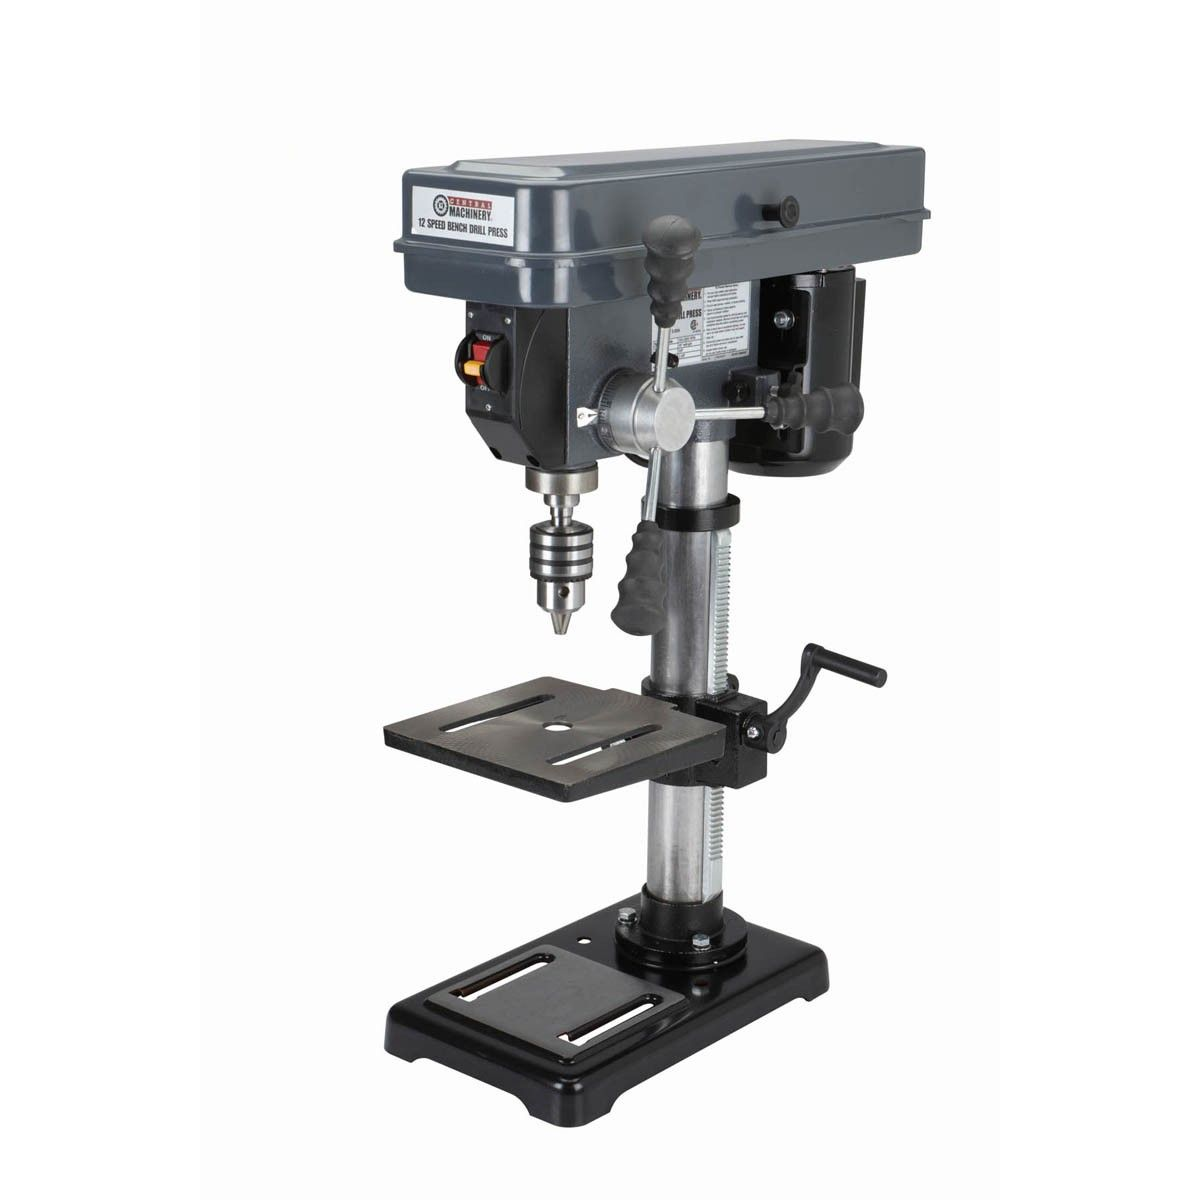 10 In 12 Speed Bench Drill Press Drill Press Woodworking Tools For Sale Drill